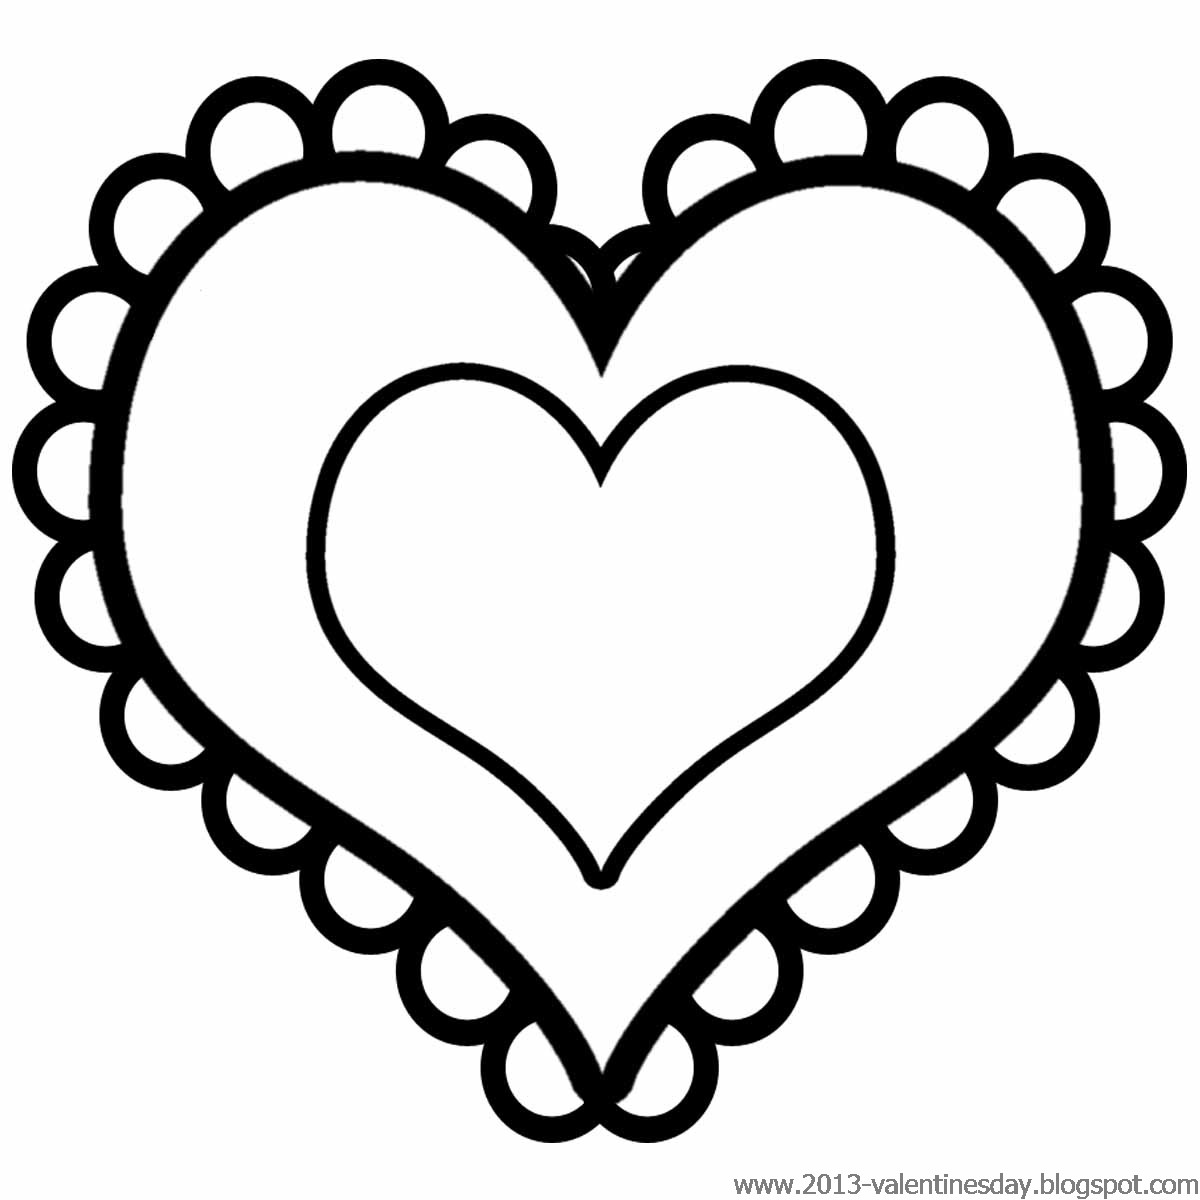 Valentines Day Clipart Black And White & Valentines Day Black And.